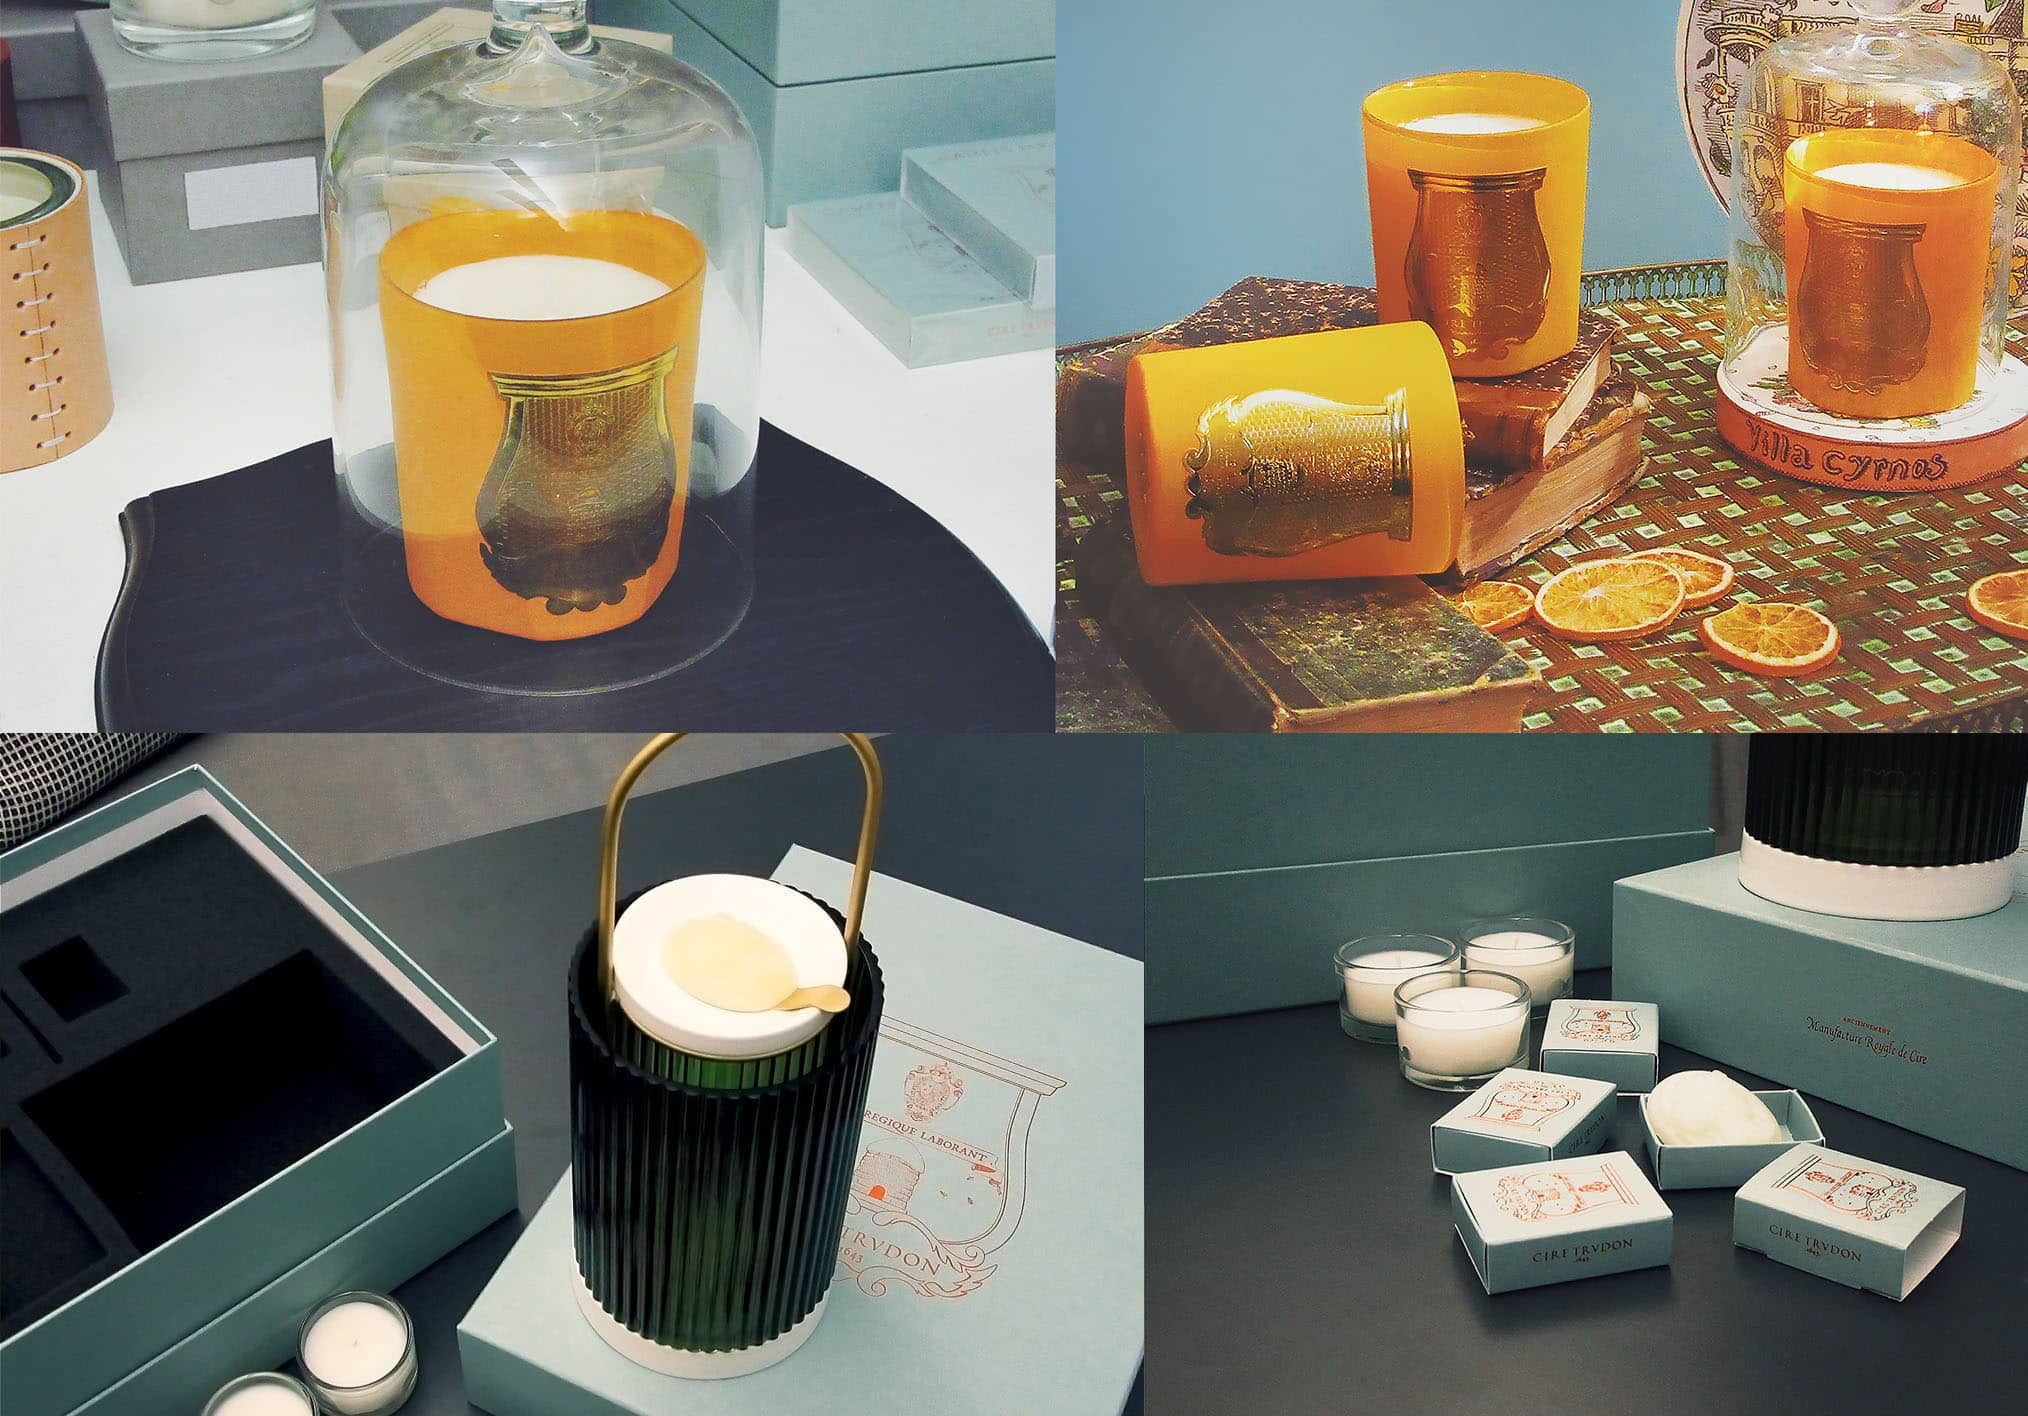 NEW Cyrnos Candle by Cire Trudon and La Promeneuse Wax Burner